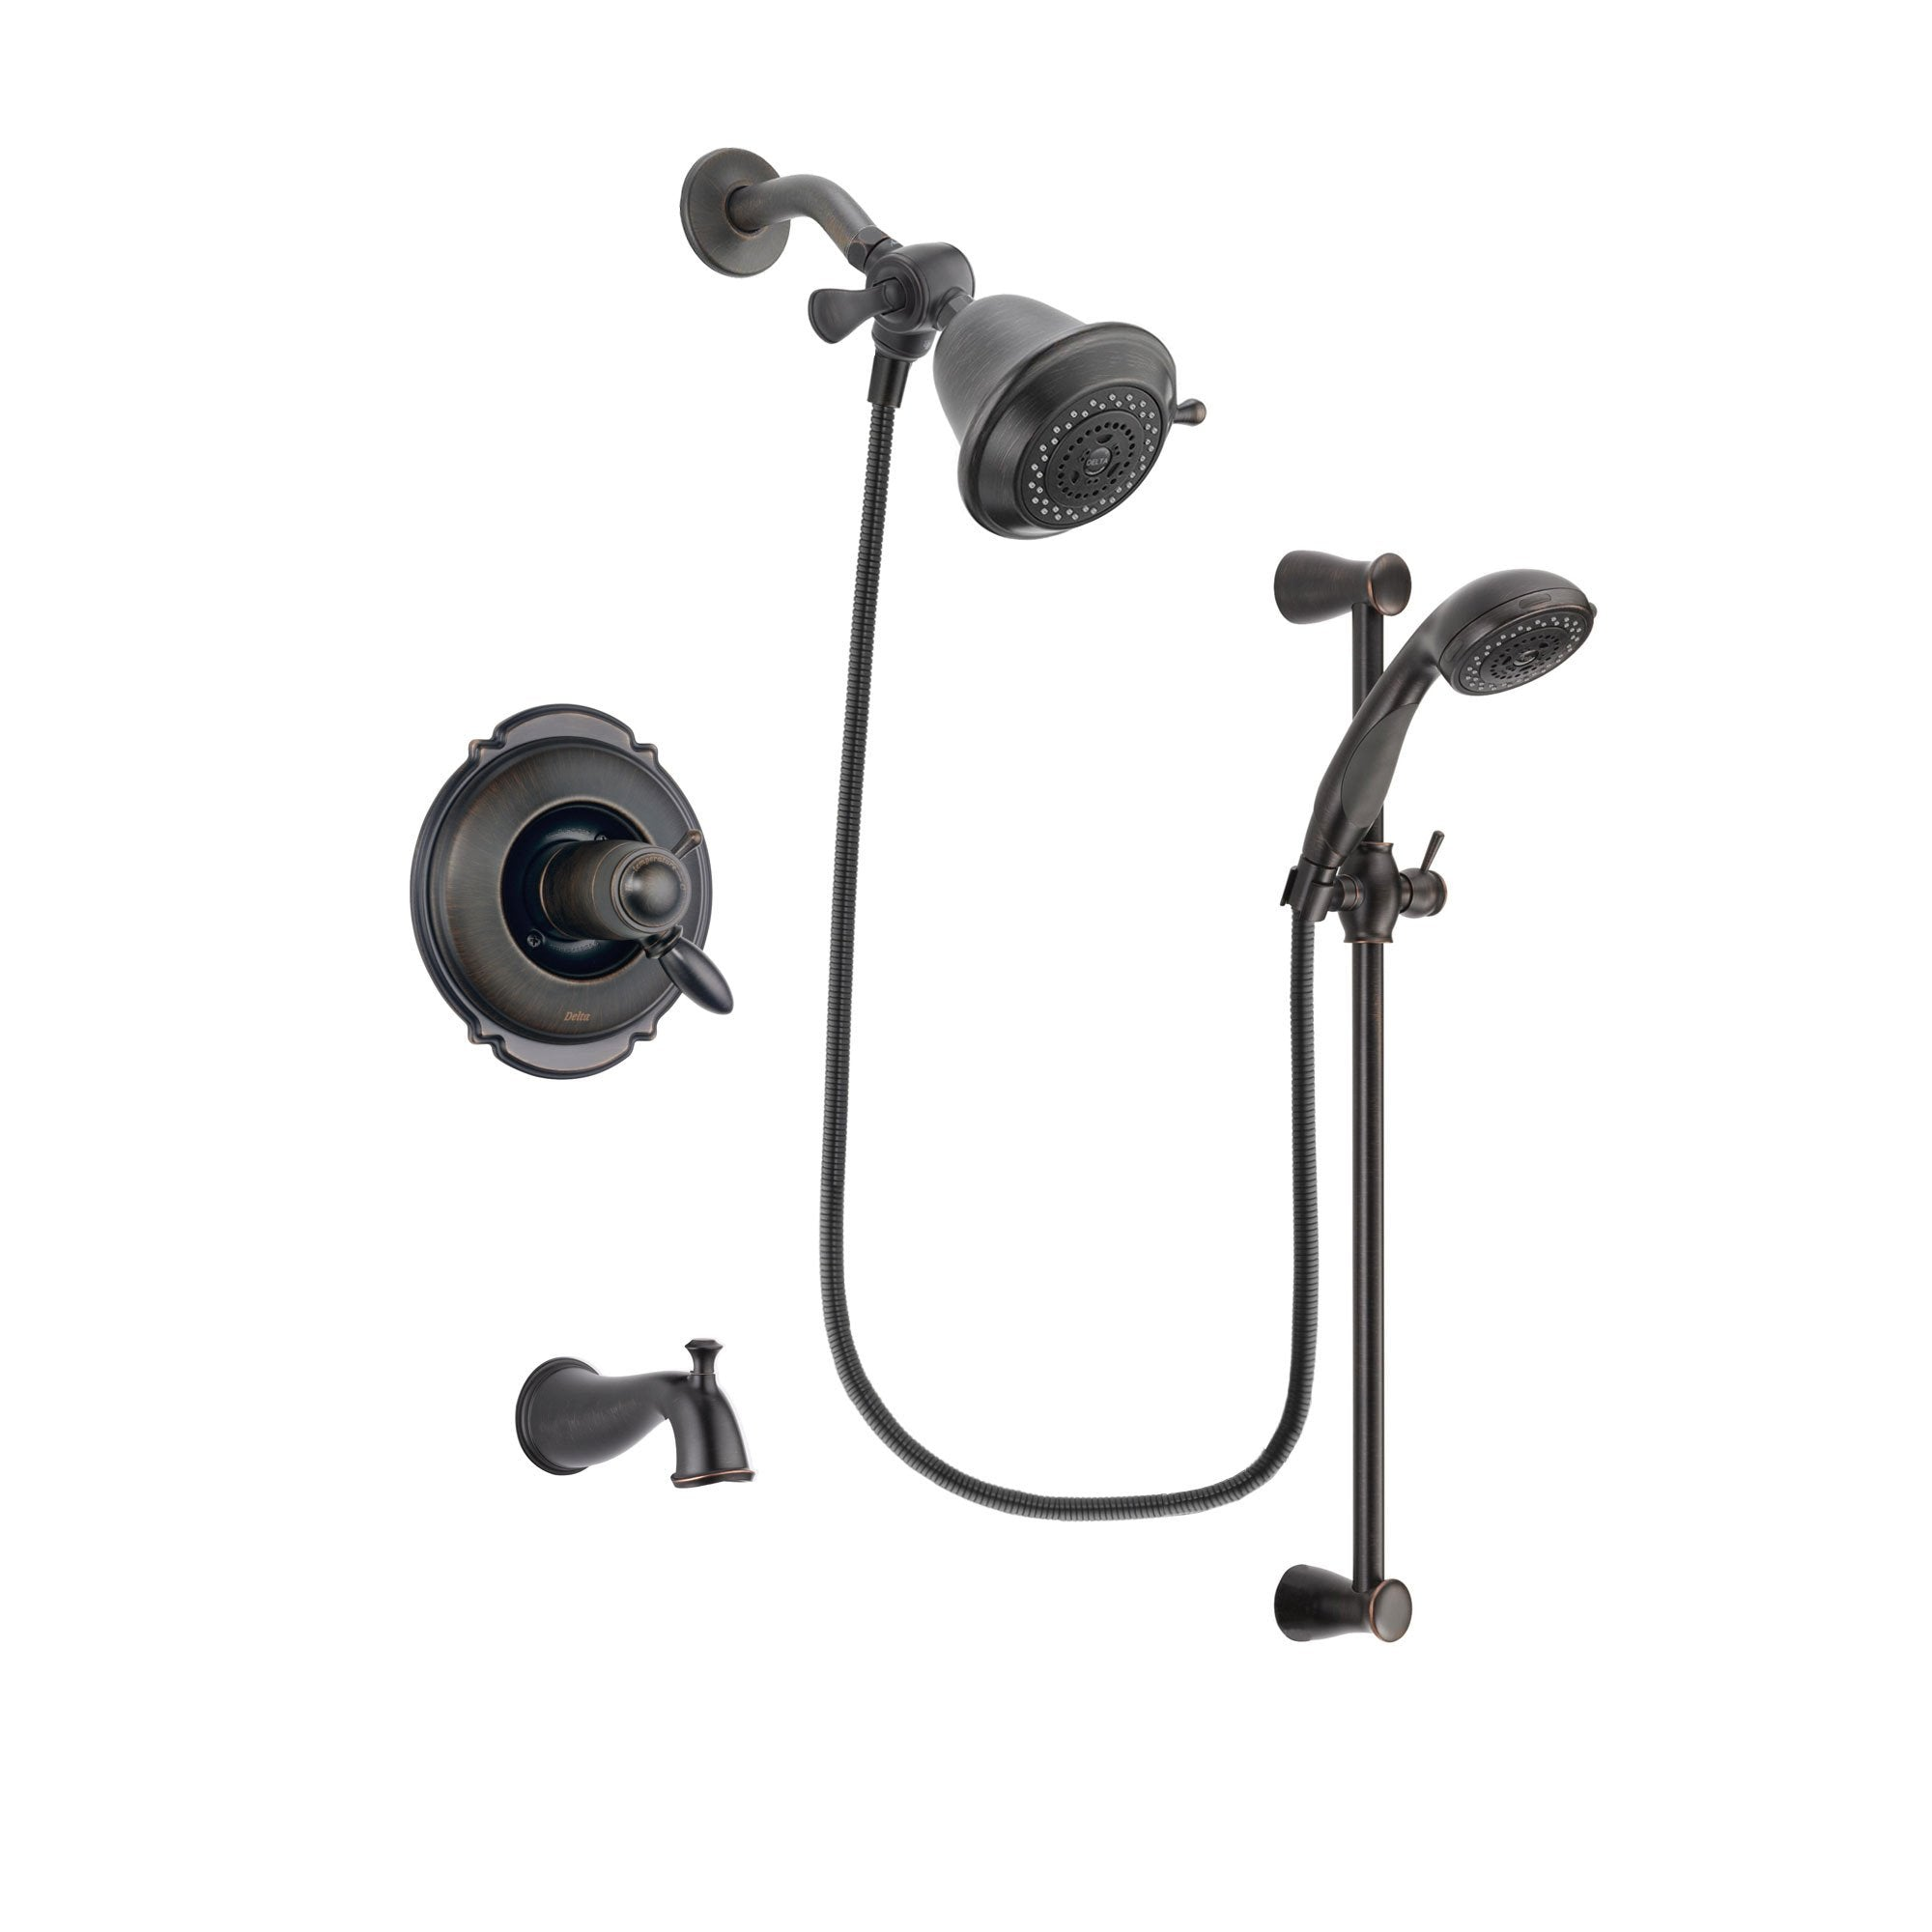 Delta Victorian Venetian Bronze Finish Thermostatic Tub and Shower Faucet System Package with Shower Head and Personal Handheld Shower Spray with Slide Bar Includes Rough-in Valve and Tub Spout DSP2623V